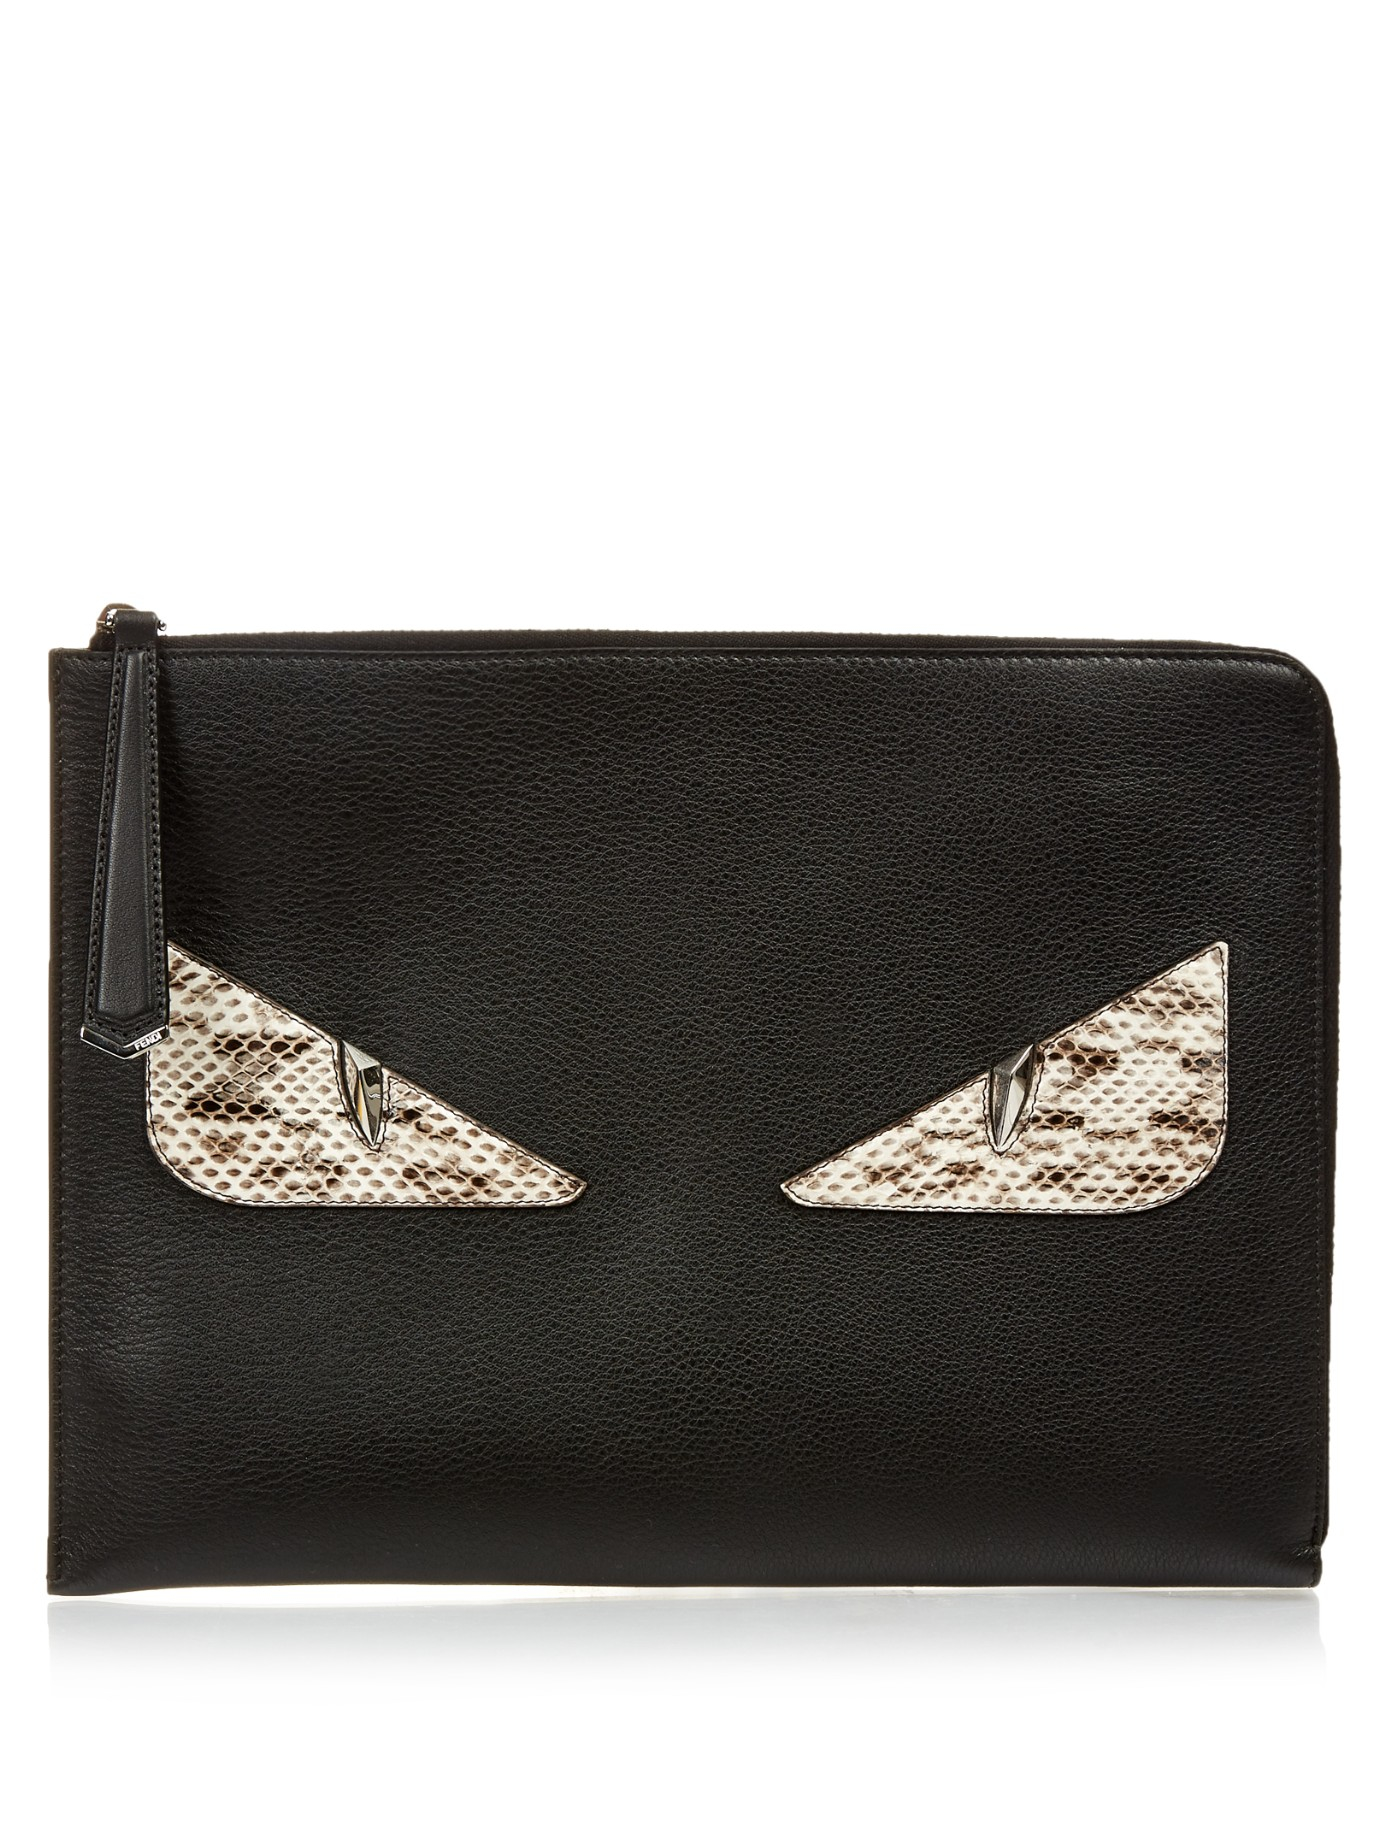 2d8635a6071f Lyst - Fendi Bag Bugs Leather And Snakeskin Pouch in Black